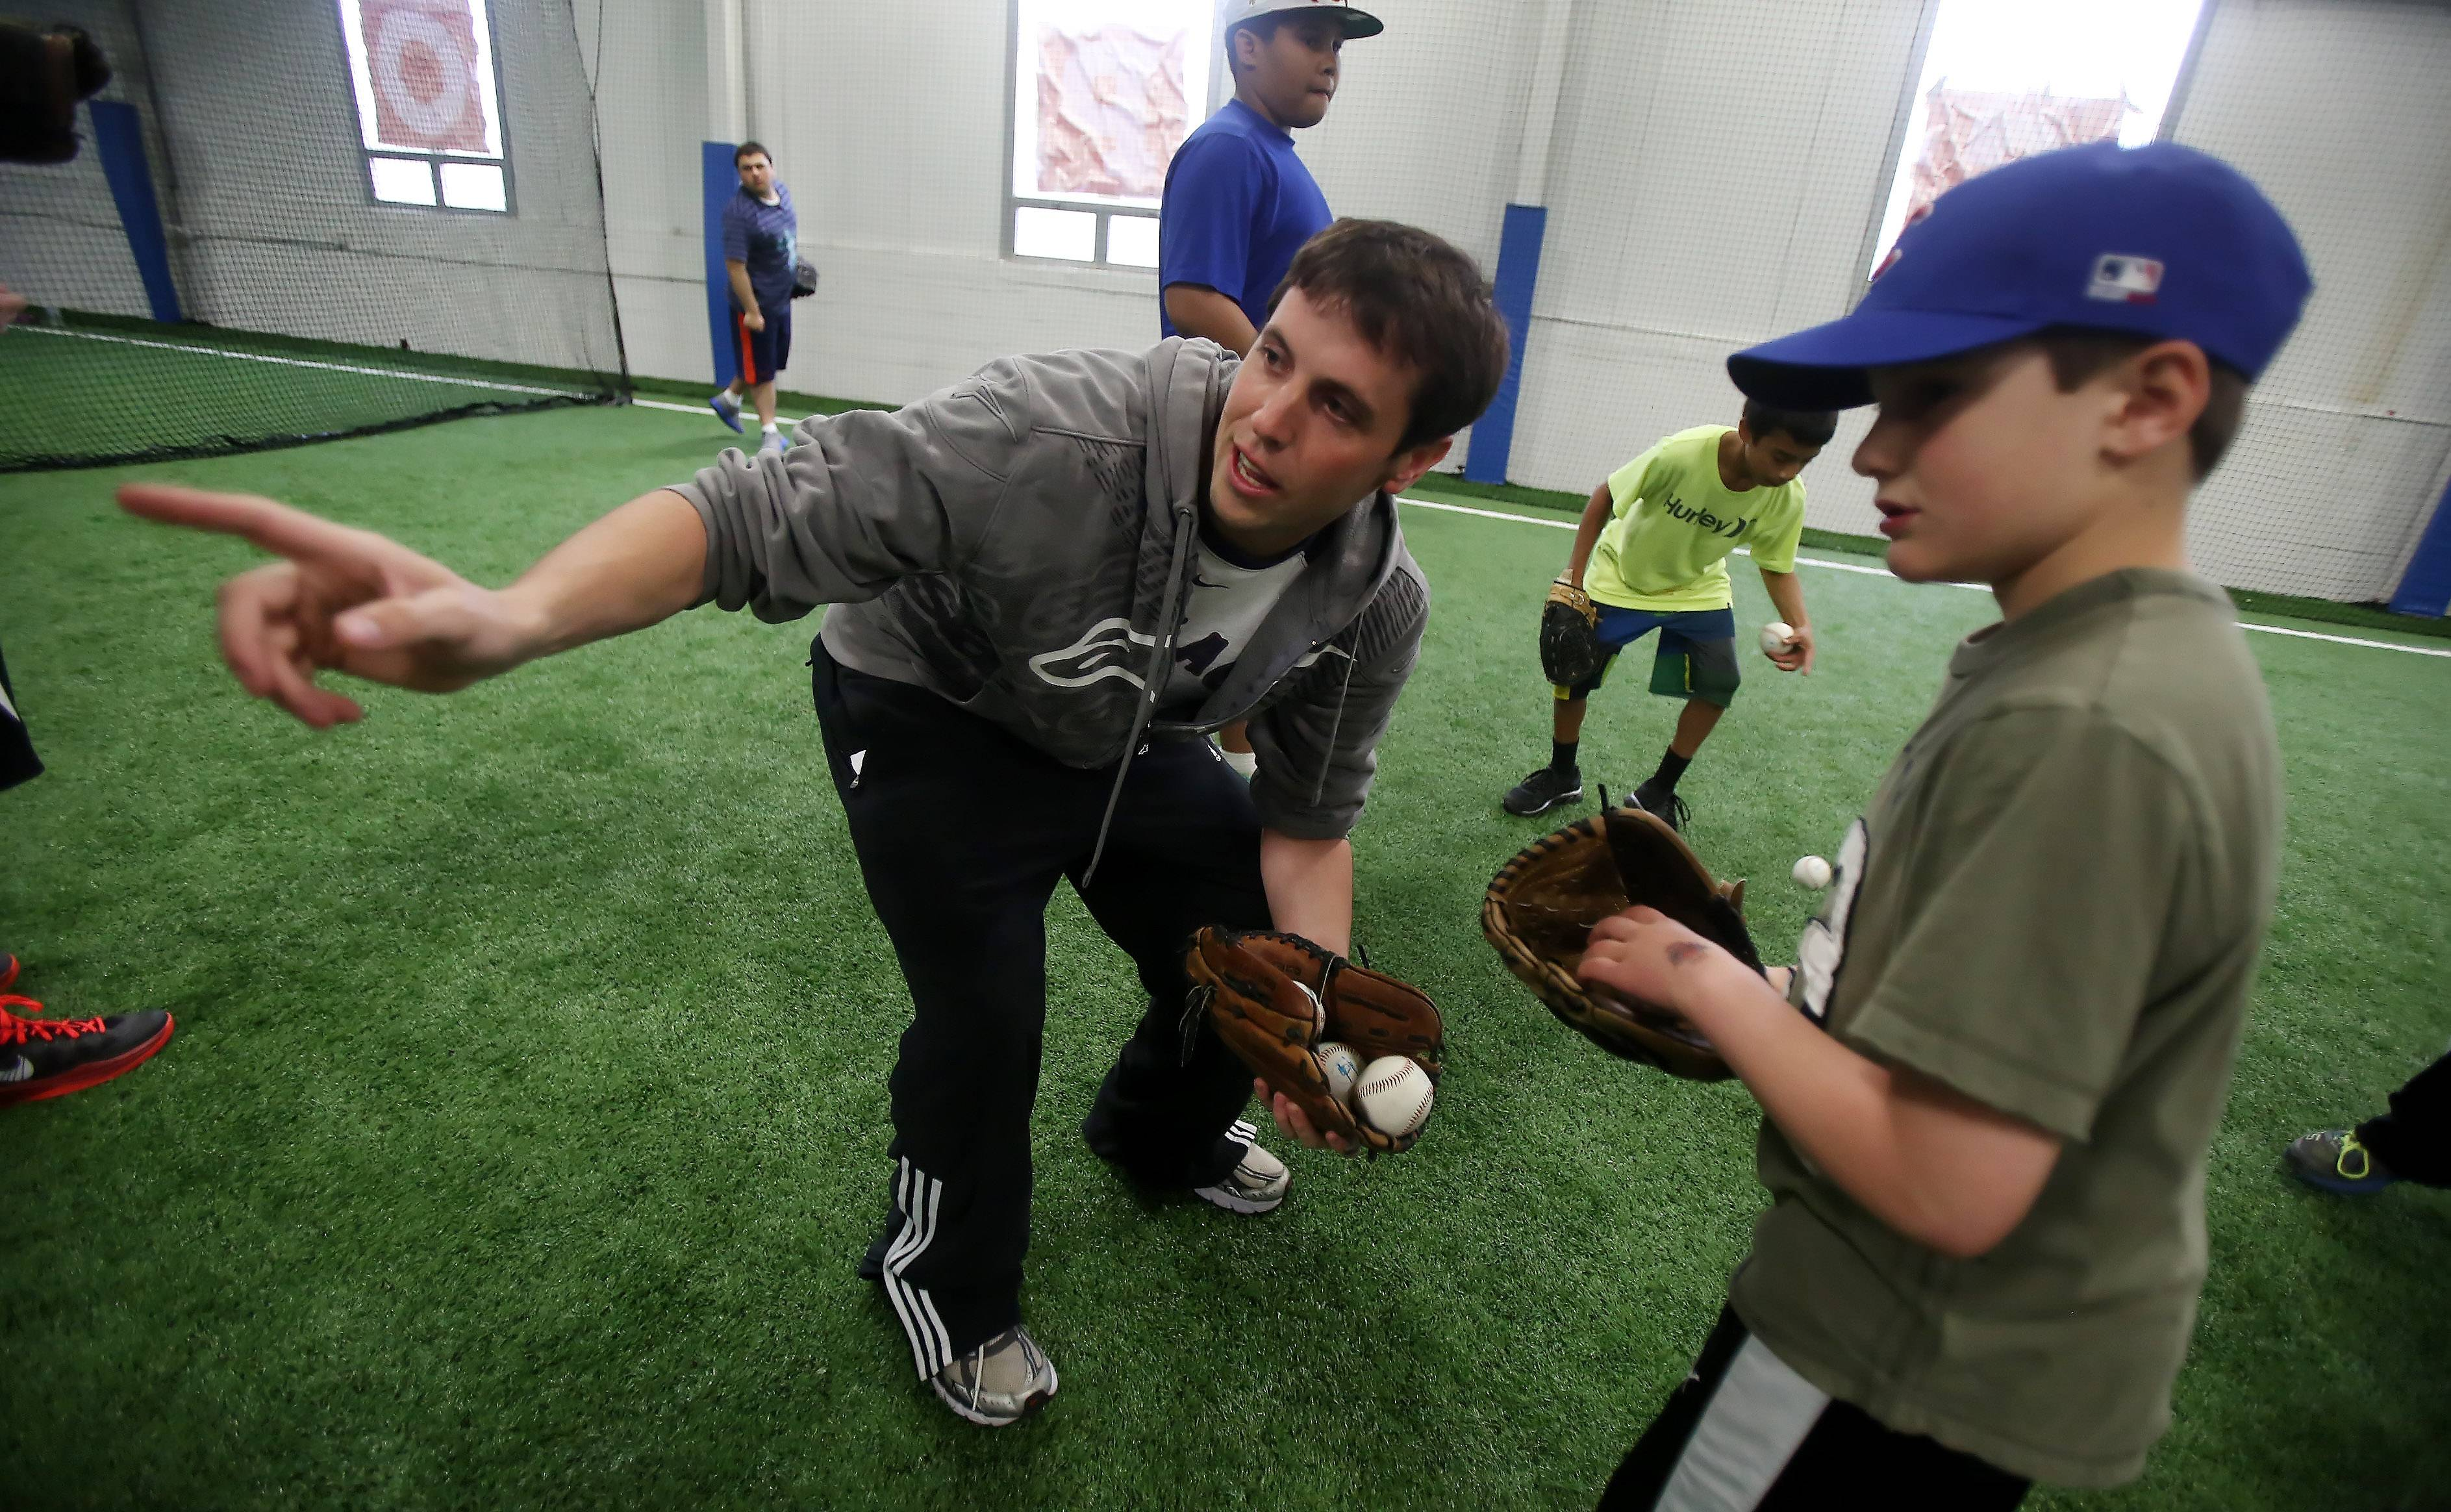 Cubs manager Justin Gebhardt directs Nicky Gebhardt, 8, during practice with he Lake Zurich Baseball and Softball Association Wednesday at the Main Street Sports Center in Lake Zurich. The LZBSA is starting up a Challenger Division for special needs children with help from older players from other divisions to teach them.